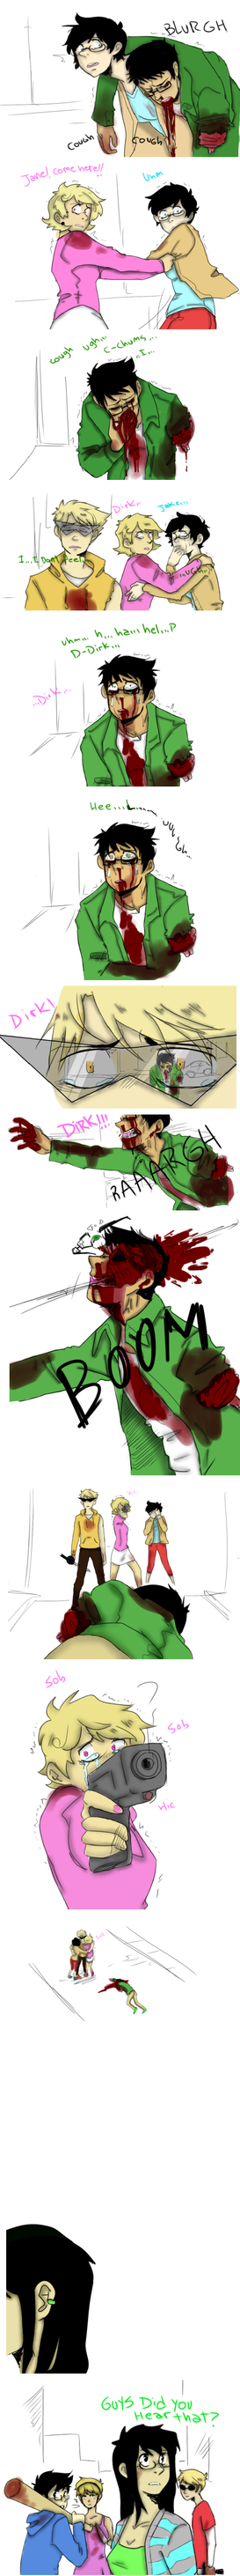 ZombieStuck The Death Of Jake by zoezoozoo